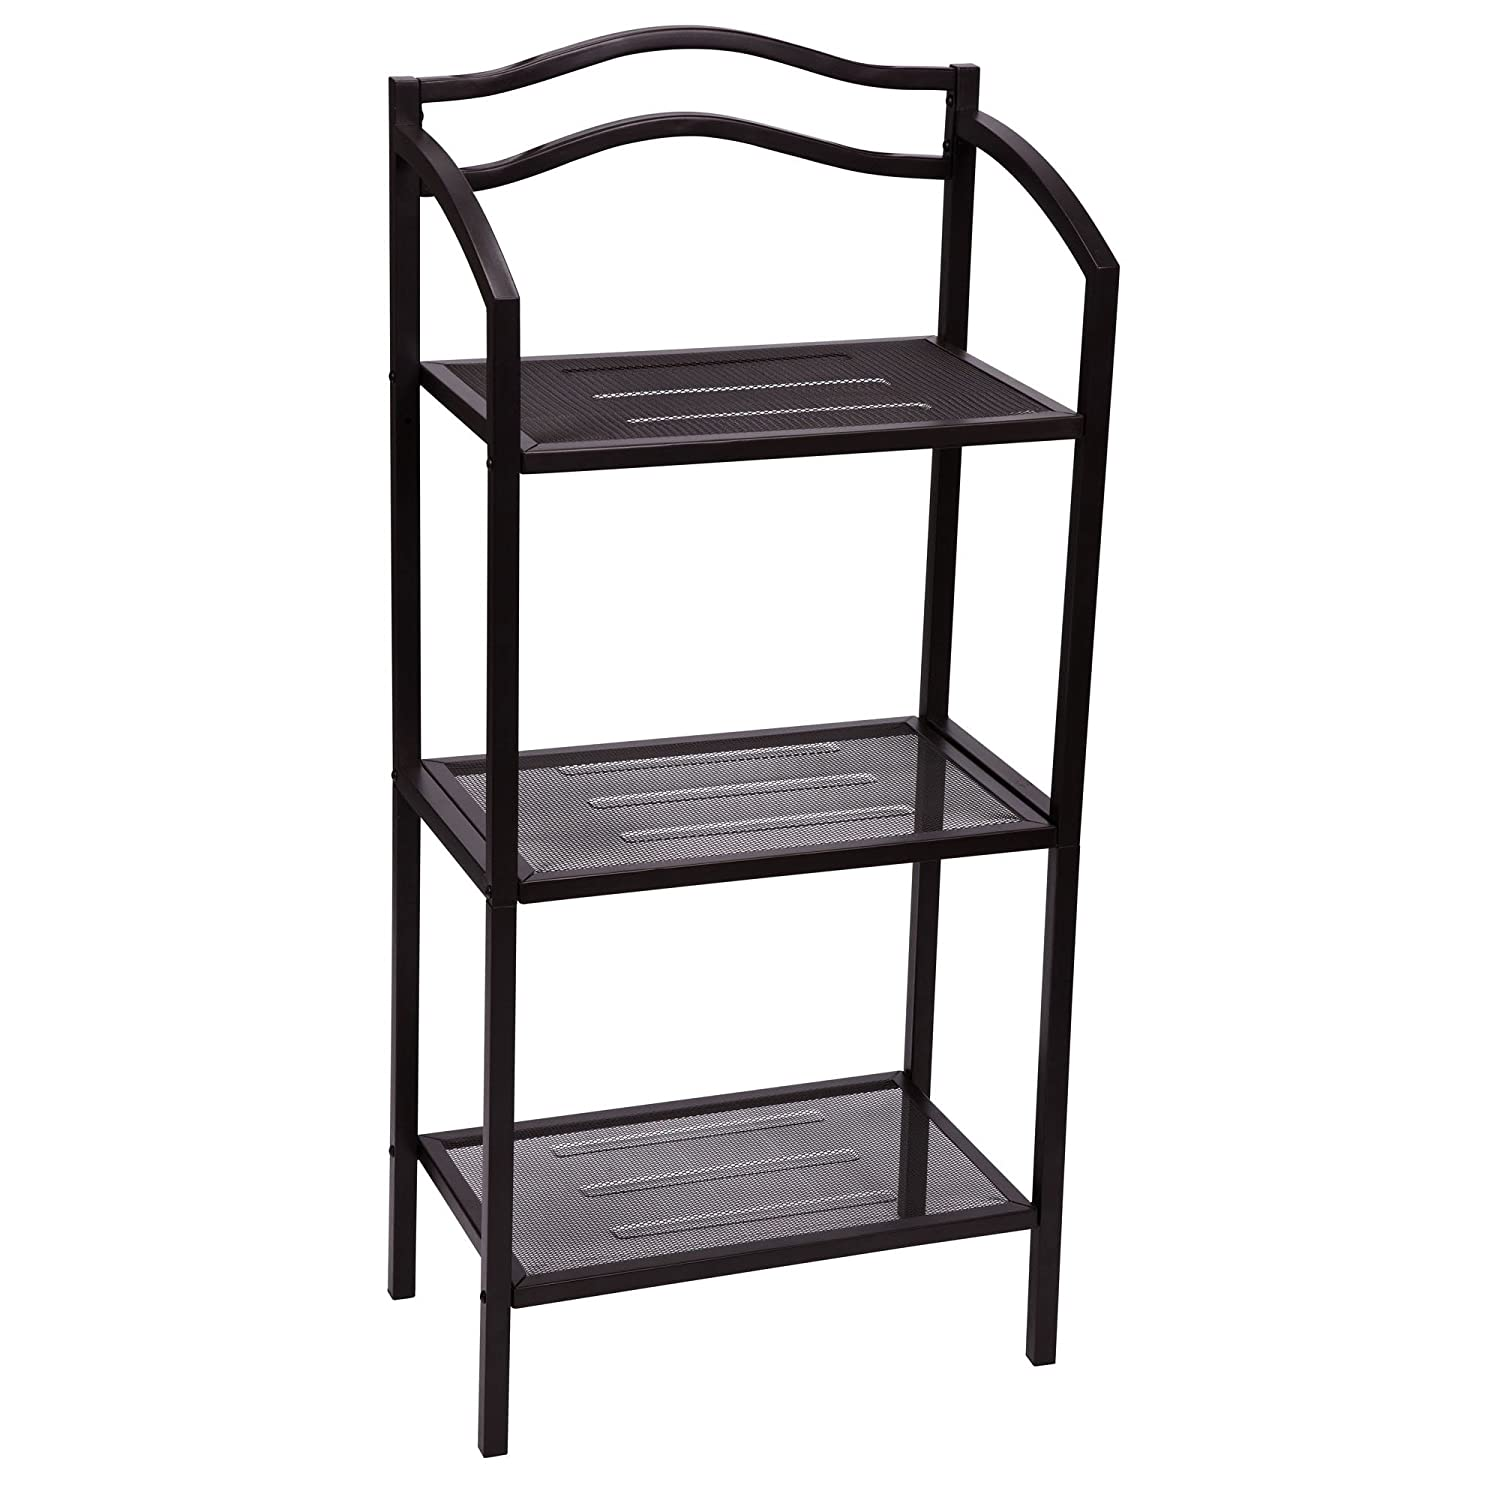 Amazon.com: Household Essentials Free-Standing 3-Tier Shelves ...